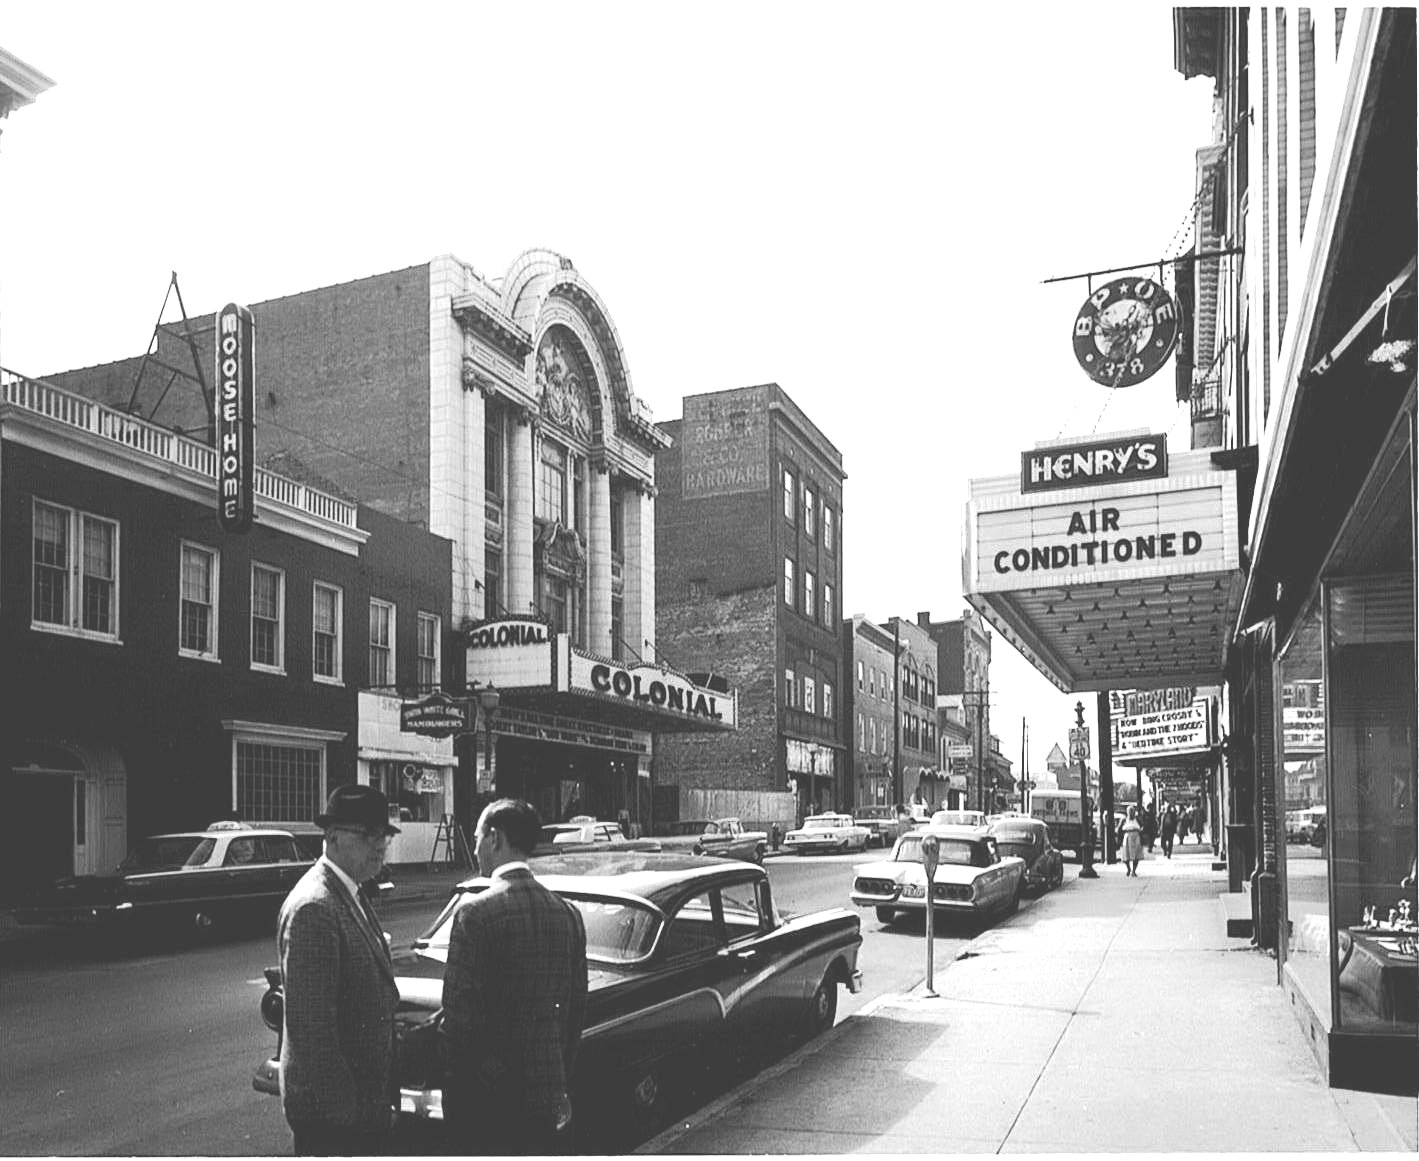 The Maryland, the Colonial & Henry's Theatres